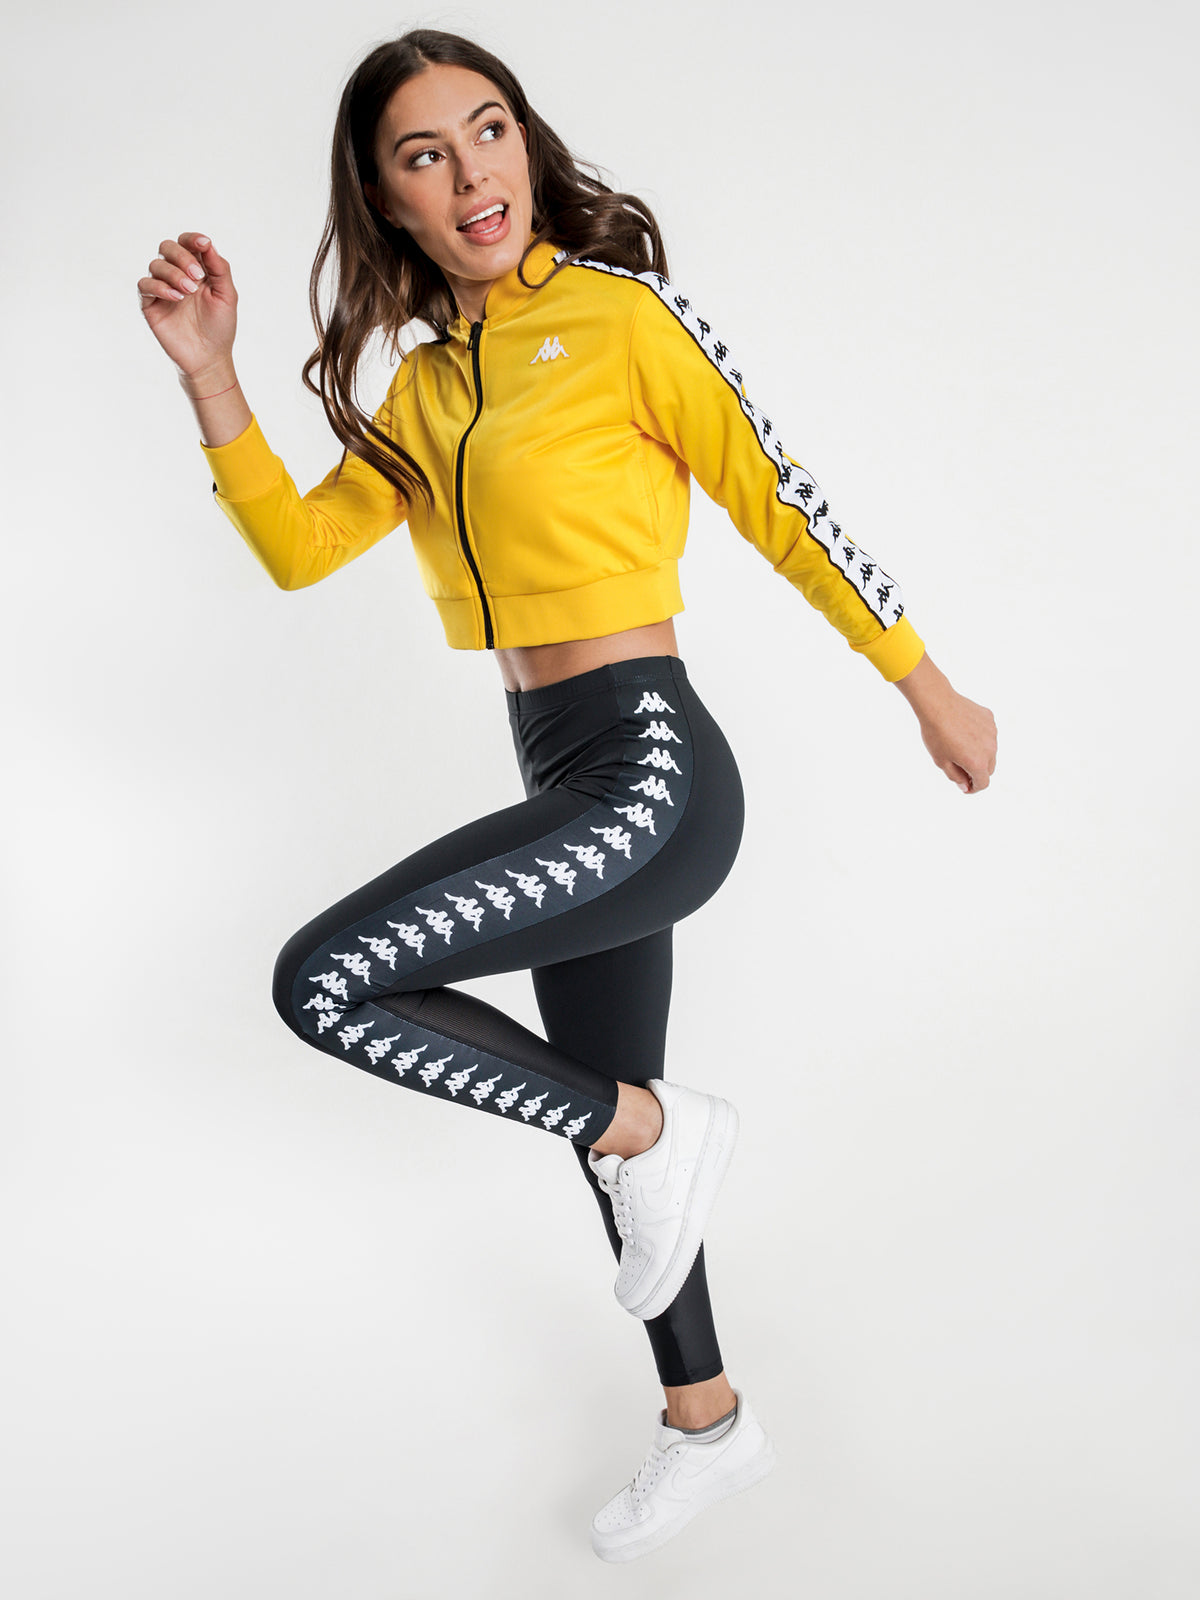 222 Banda Asber Jacket in Yellow & Black